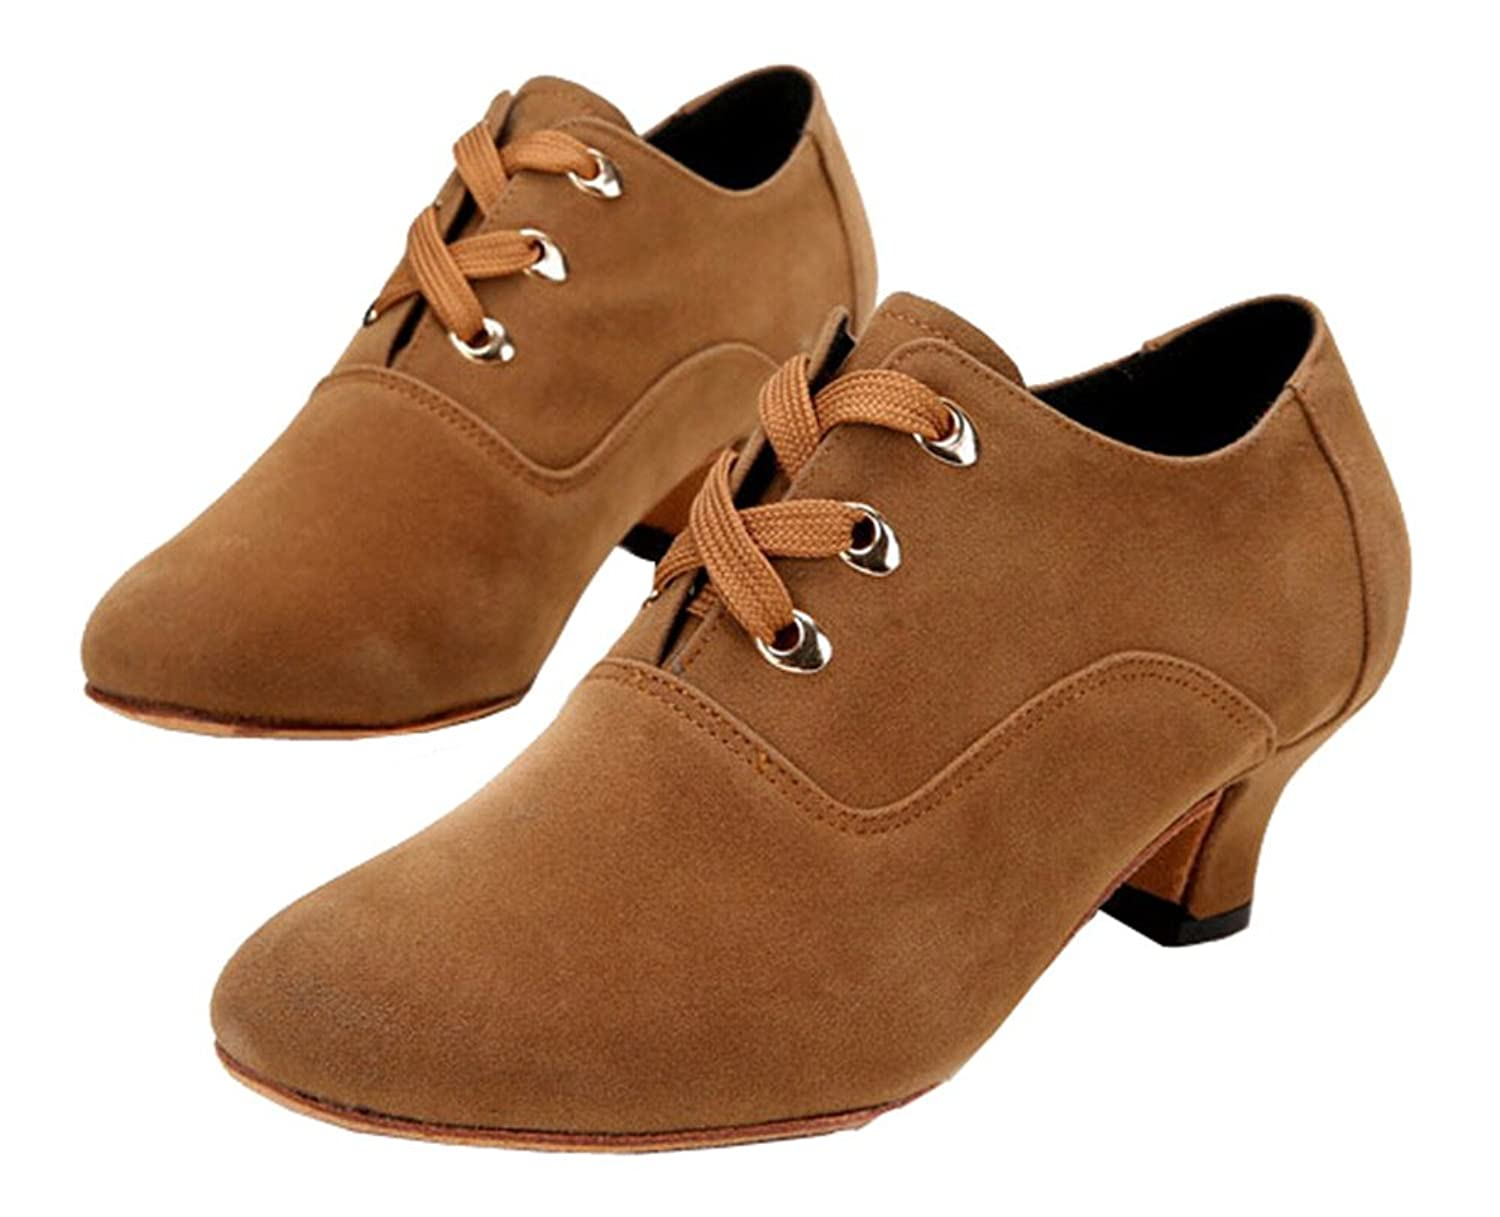 1930s Style Shoes – Art Deco Shoes Womens Modern Practice Social Dance Shoes Ankle Jazz Boots Lace-up $33.50 AT vintagedancer.com